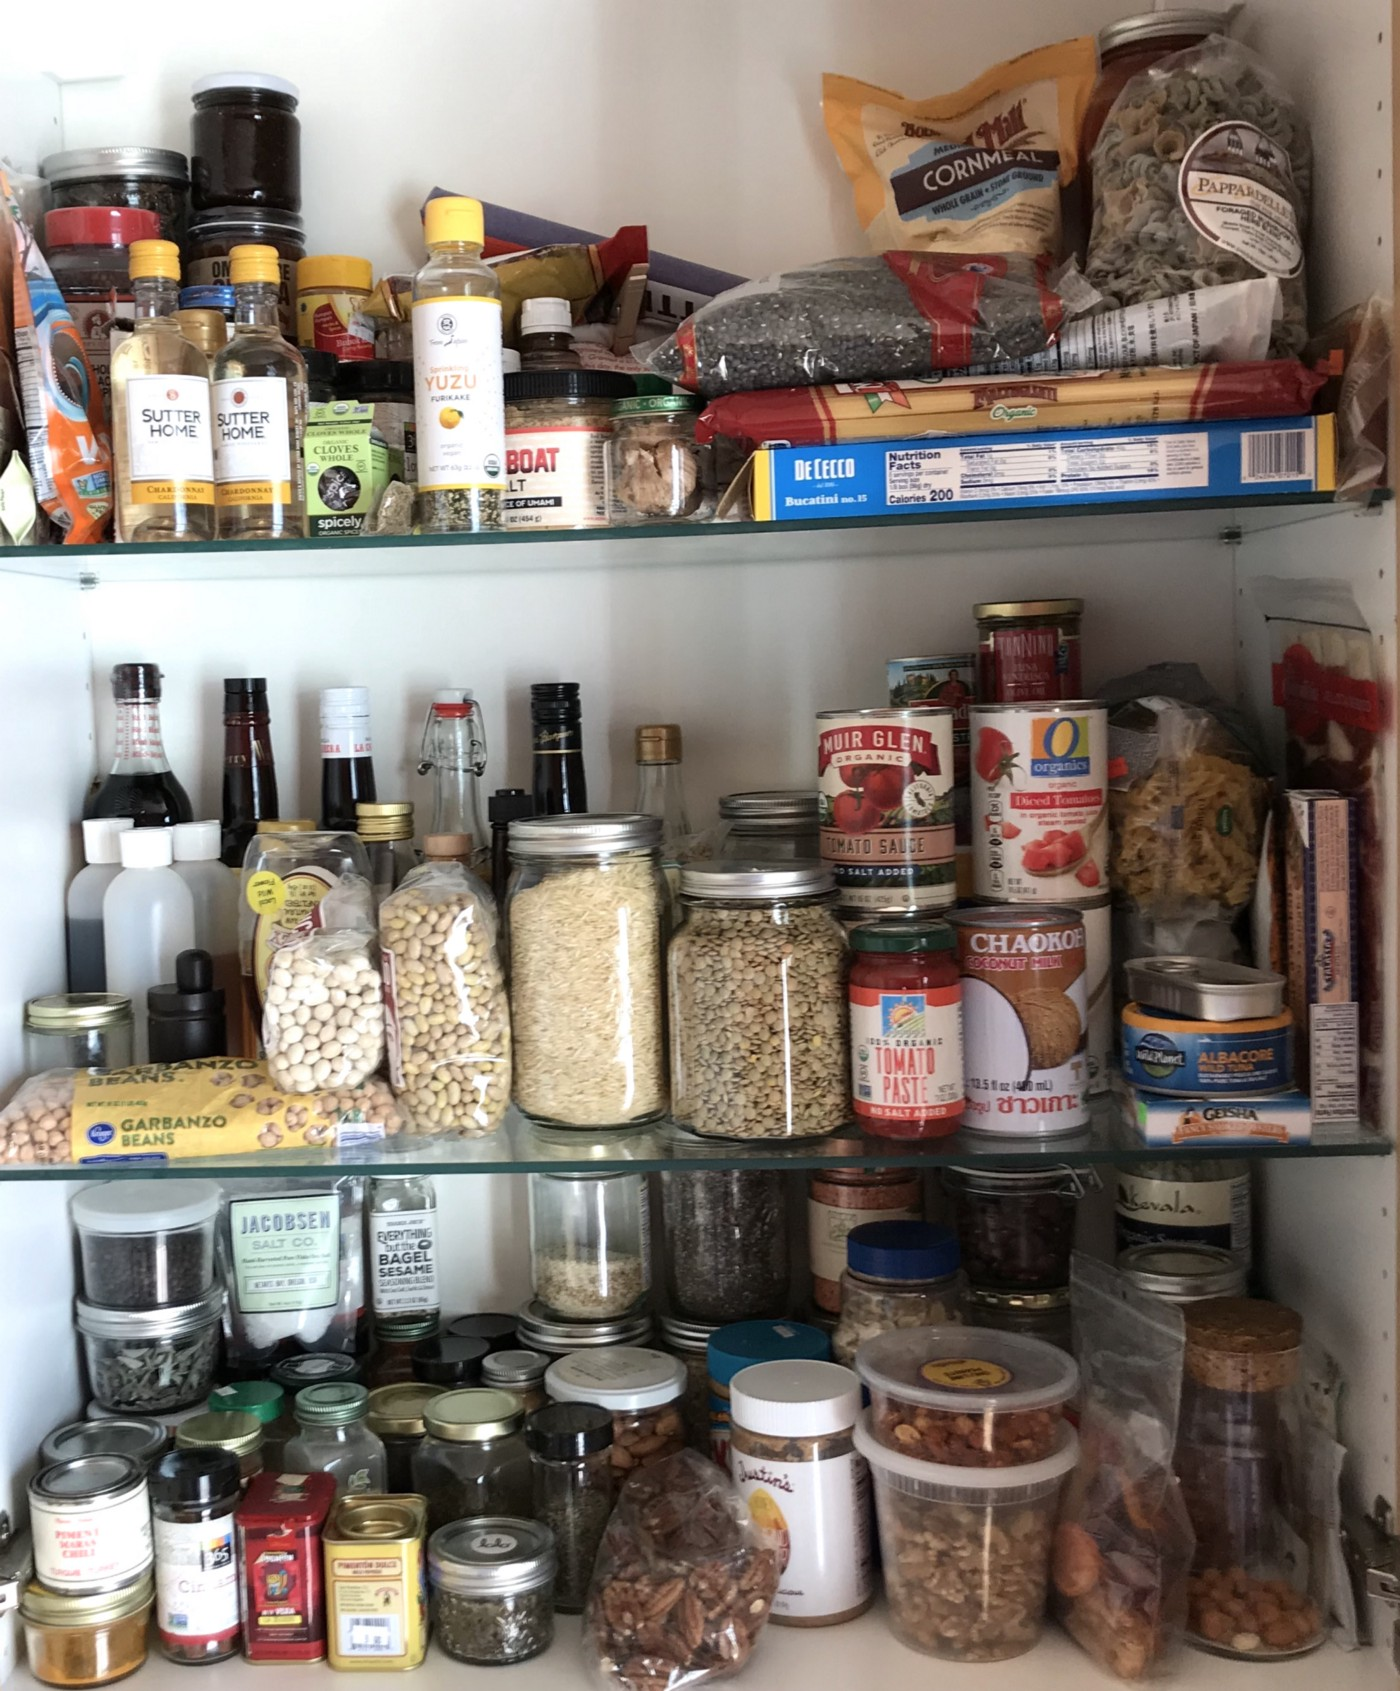 A stocked pantry full of staple ingredients